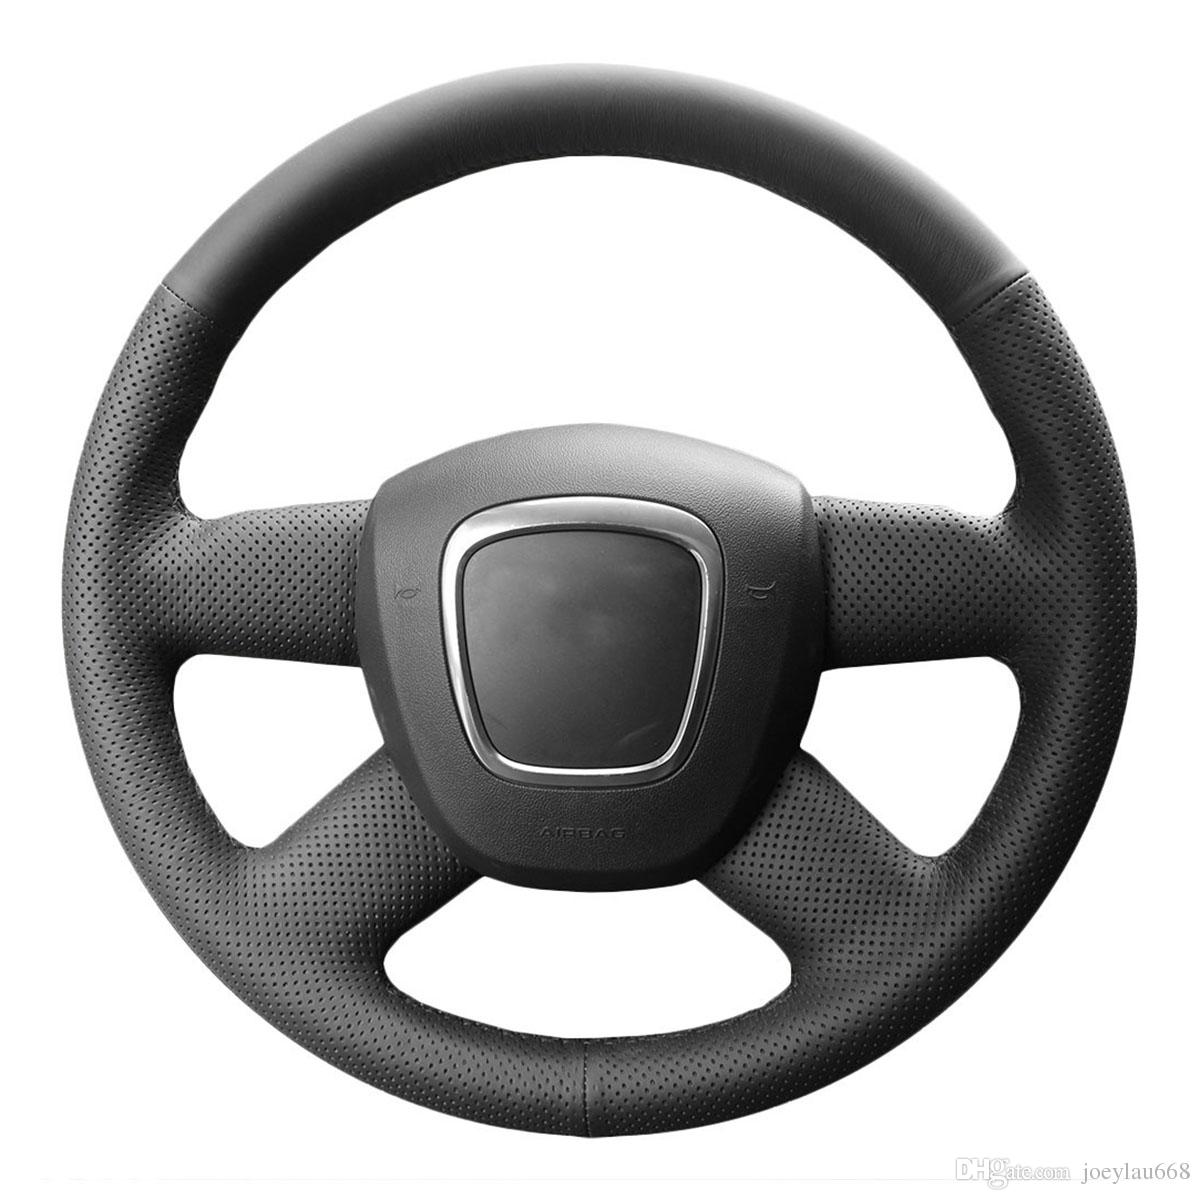 Steering Wheel Covers Case for Audi A4 B7 B8 A6 C6 4 Spokes Genuine Leather DIY Hand-stitch Steering Covers Black Leather